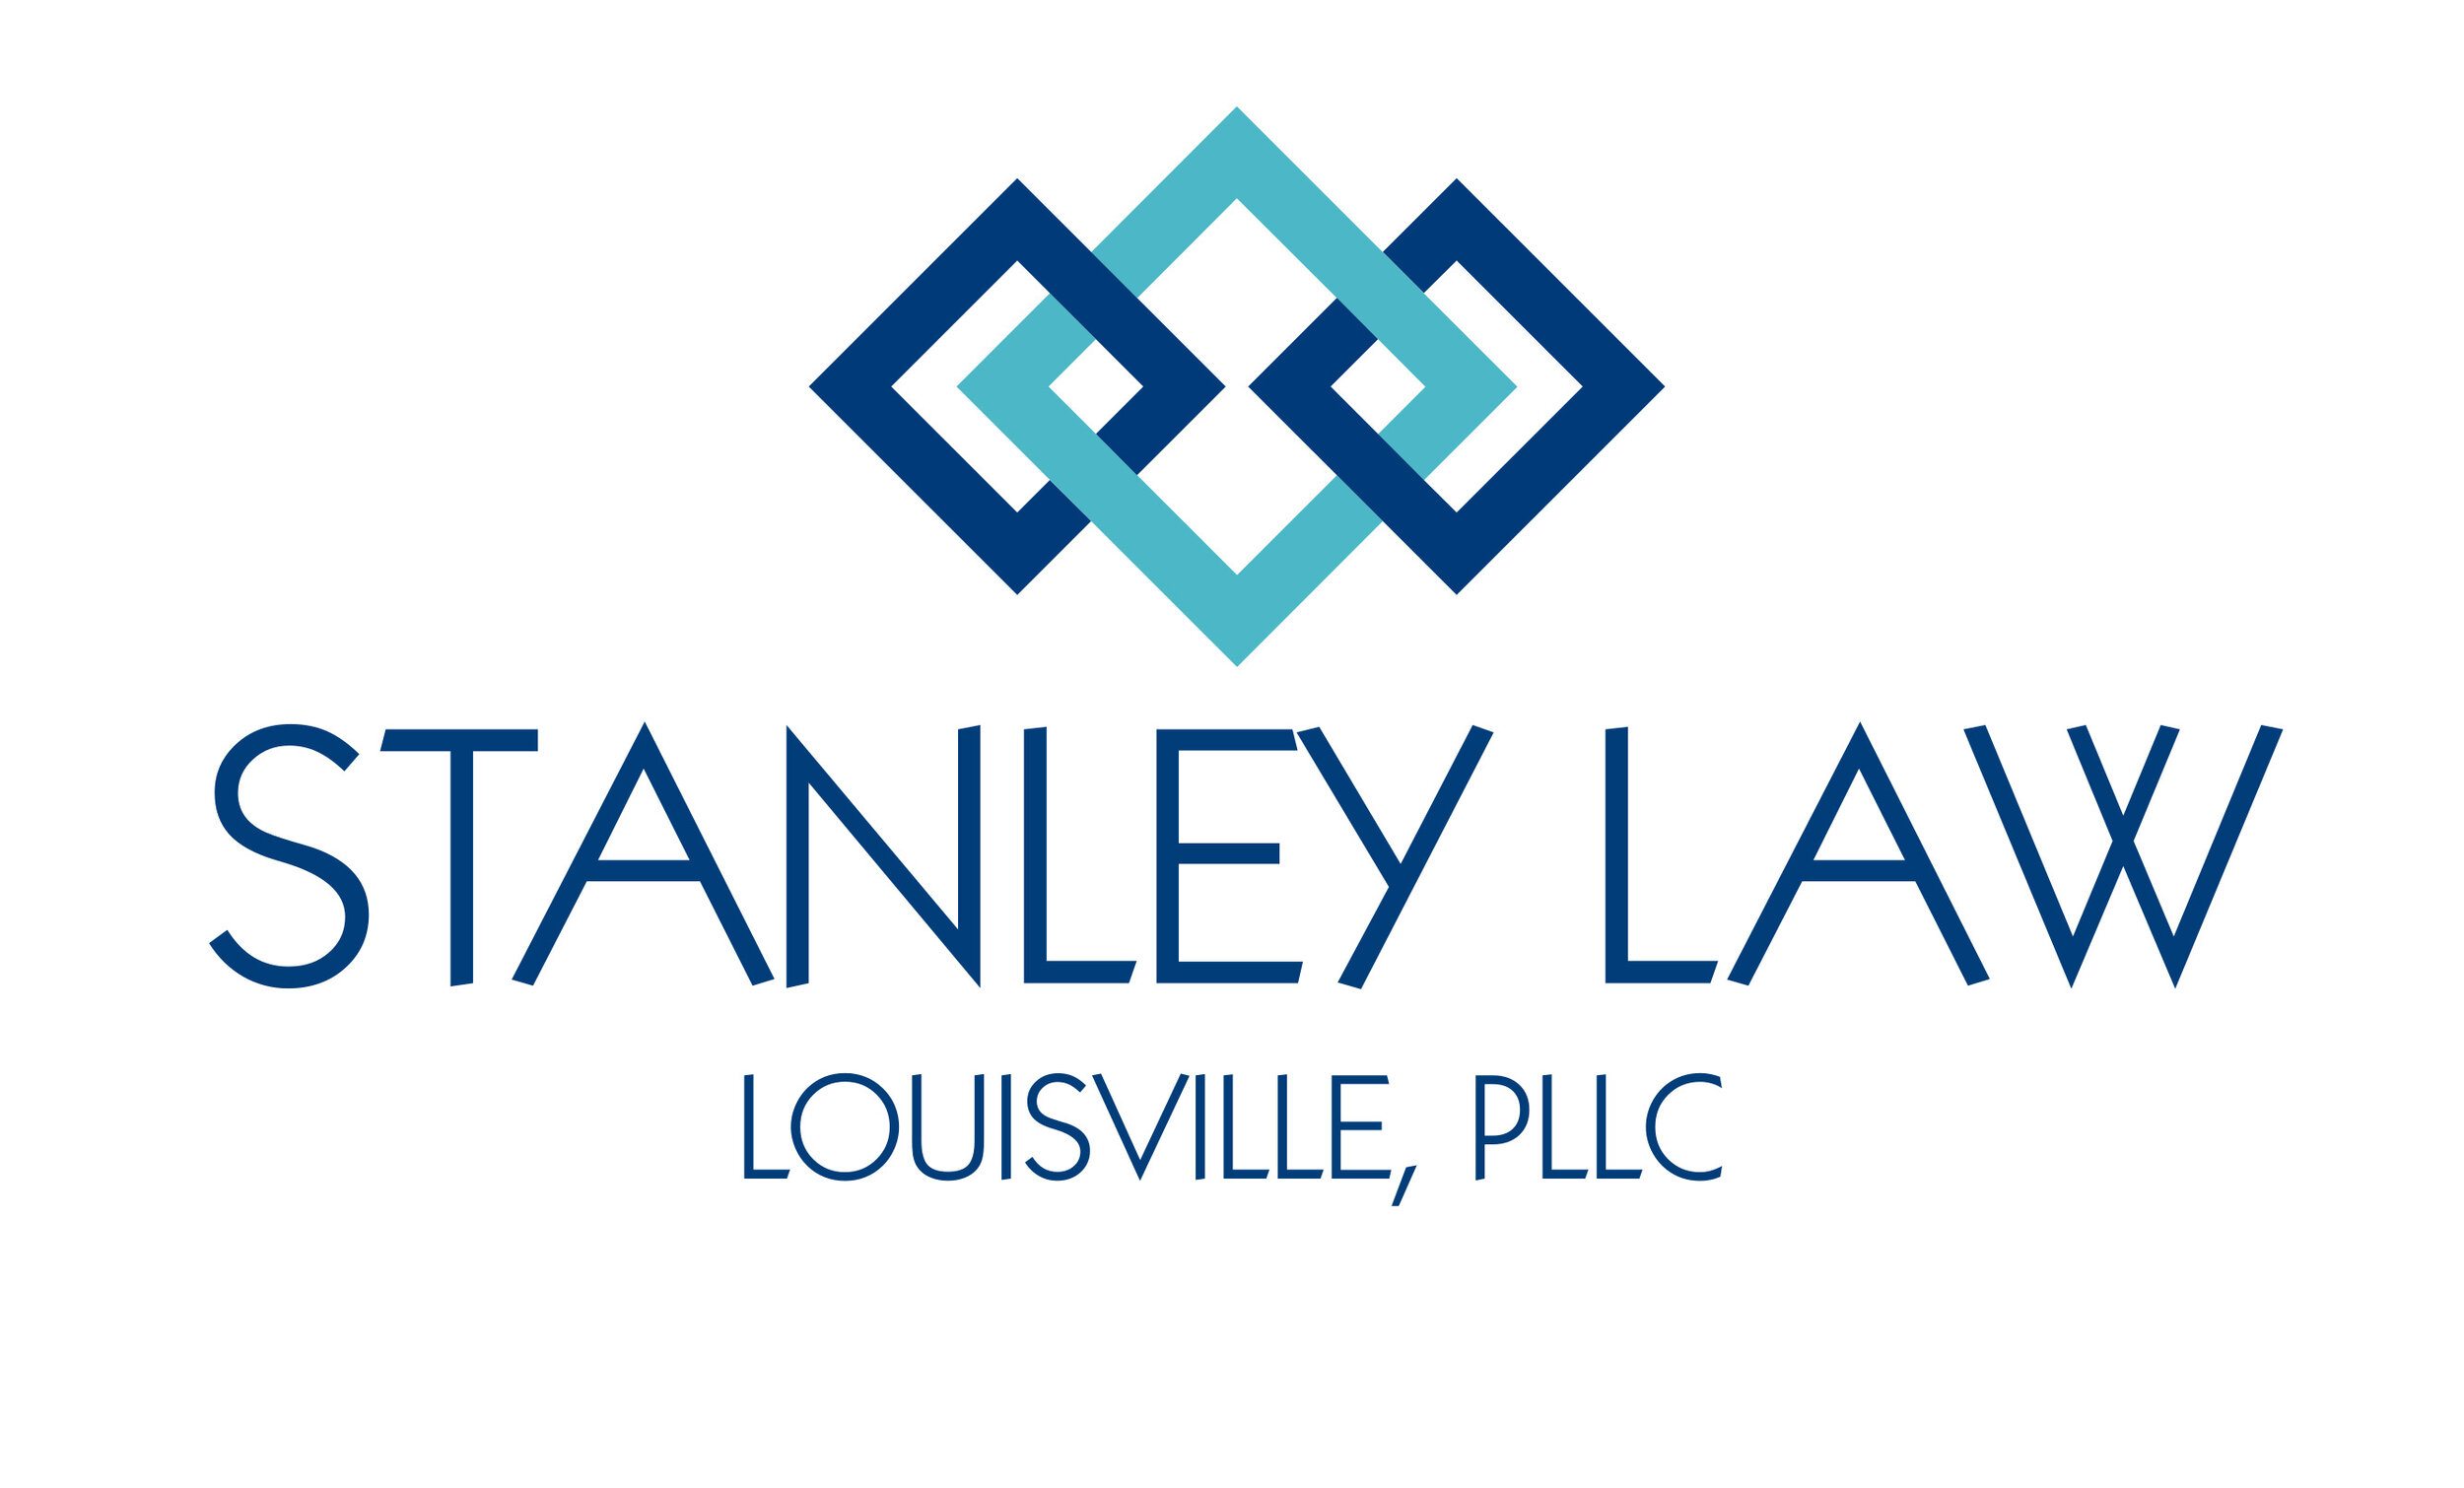 Stanley Law Louisville, PLLC